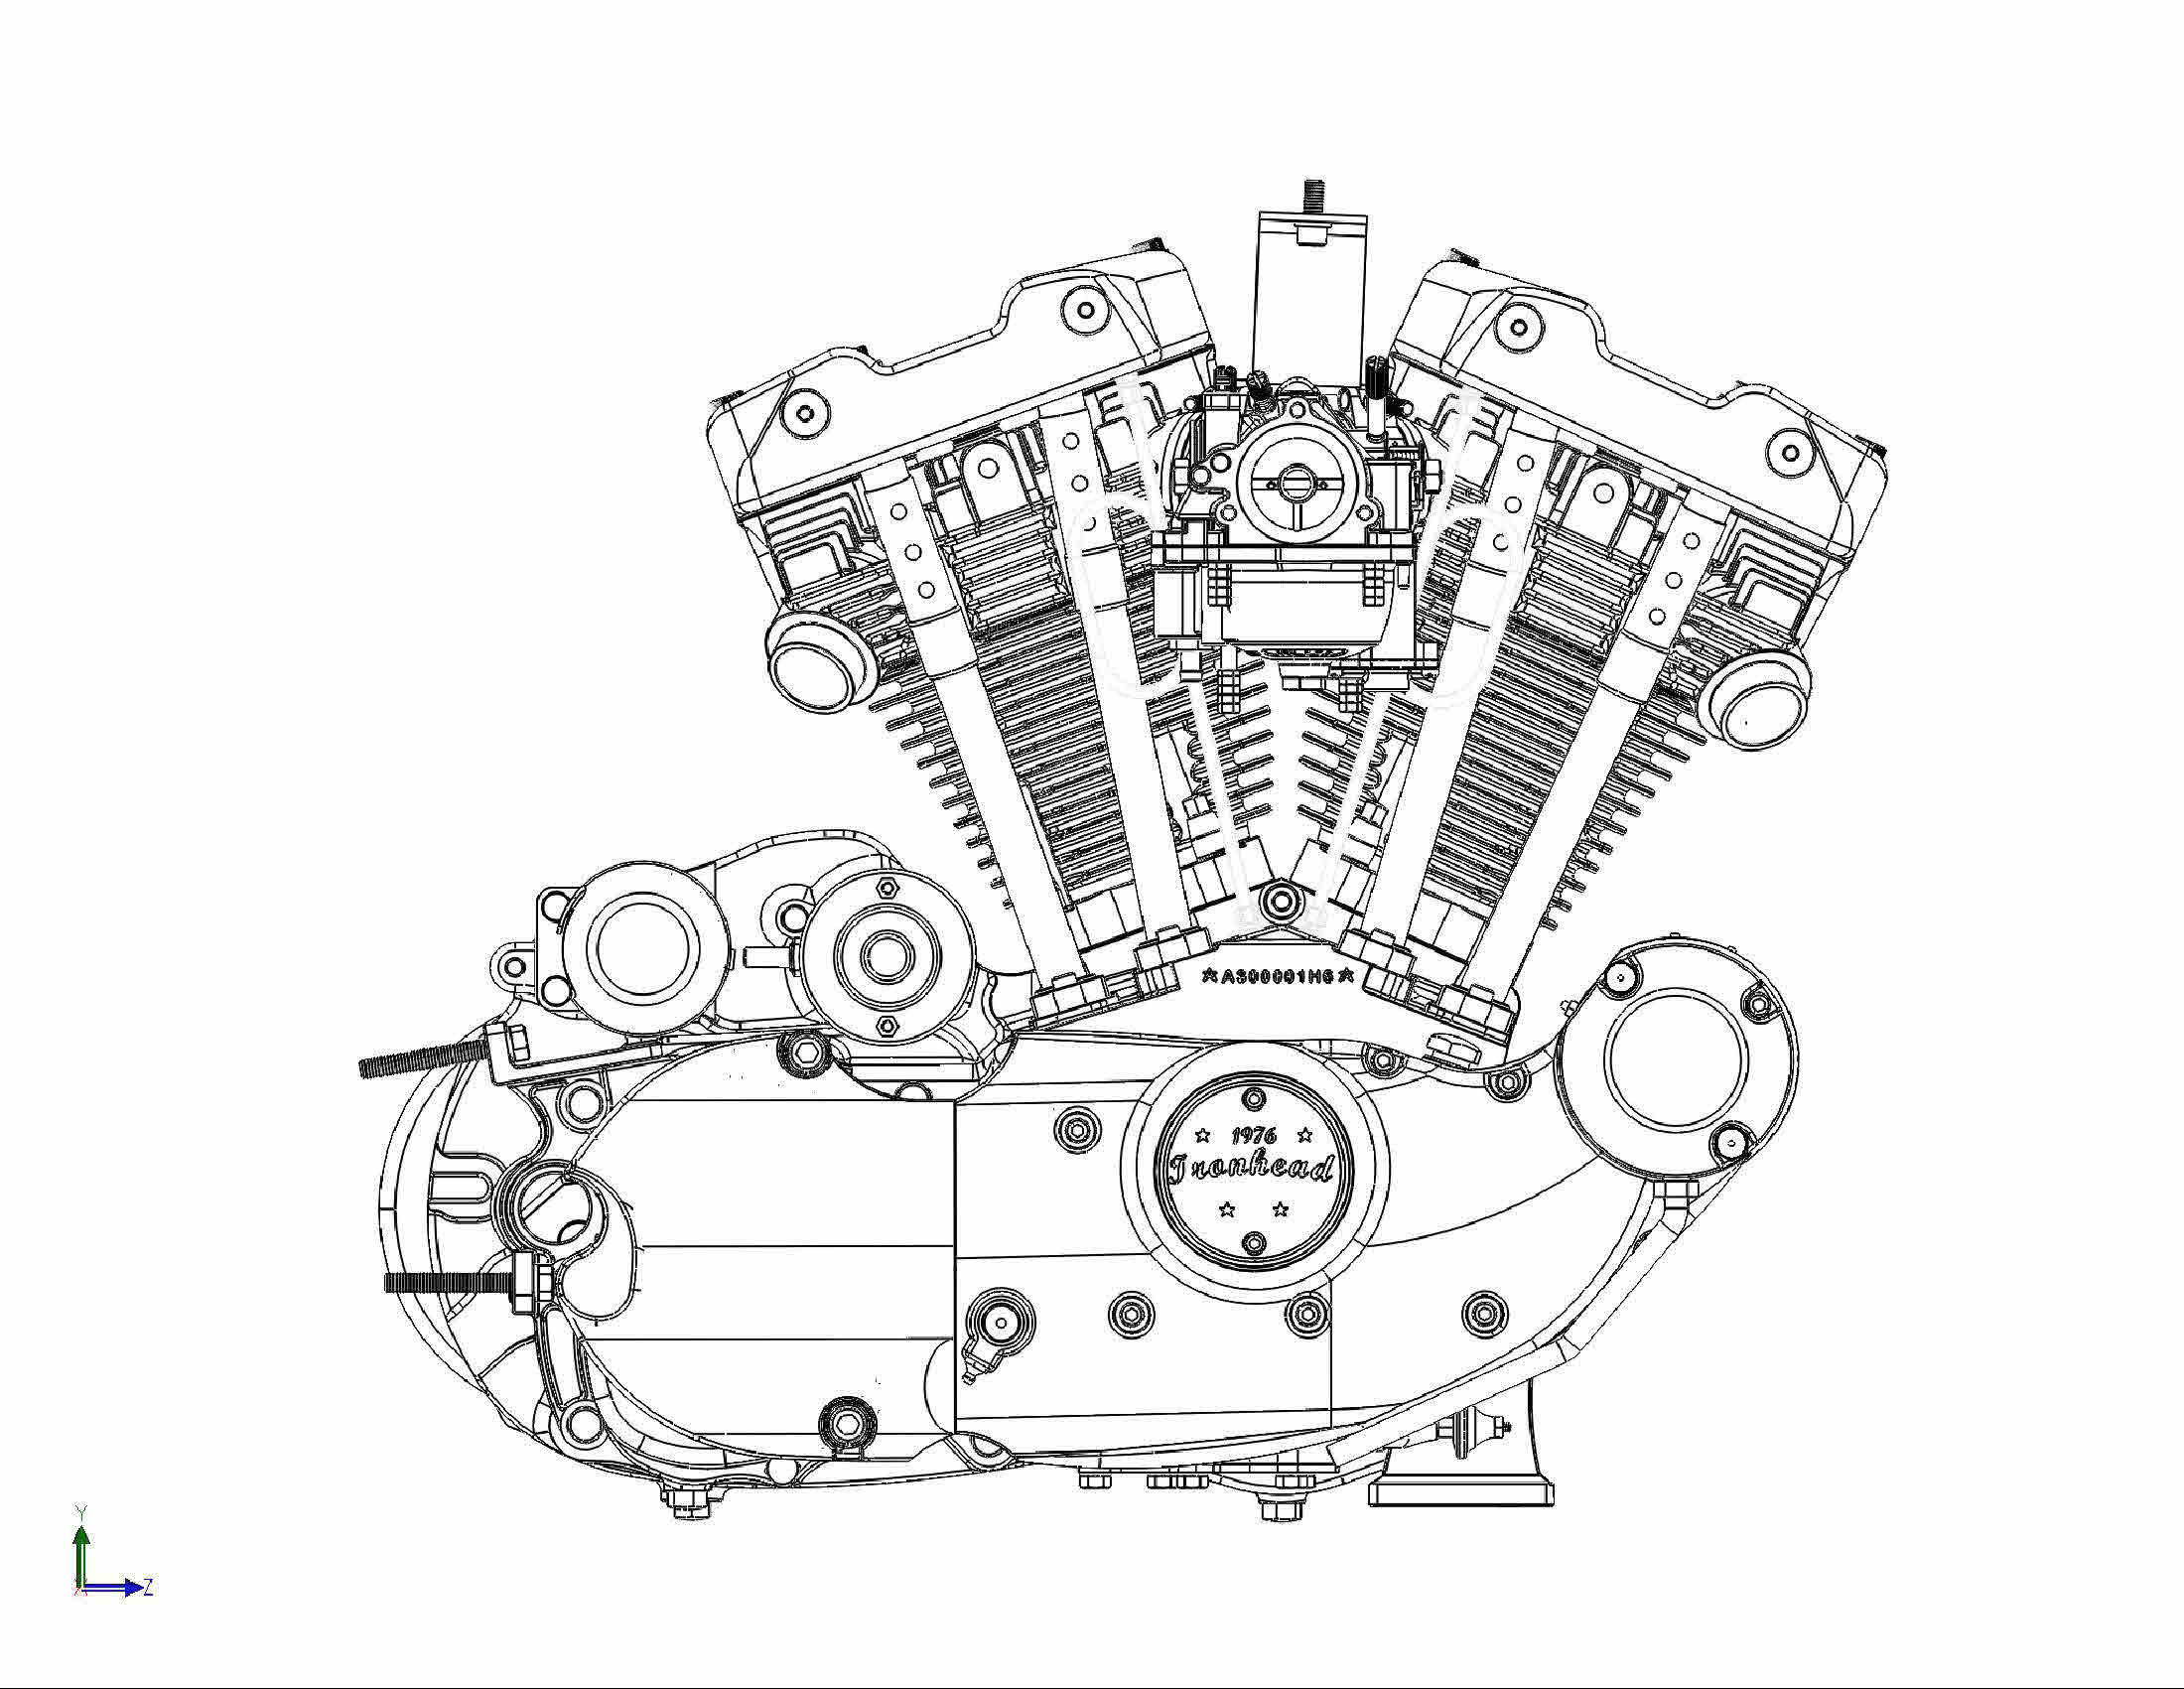 Harley Davidson Engine Drawing, Harley, Free Engine Image ...